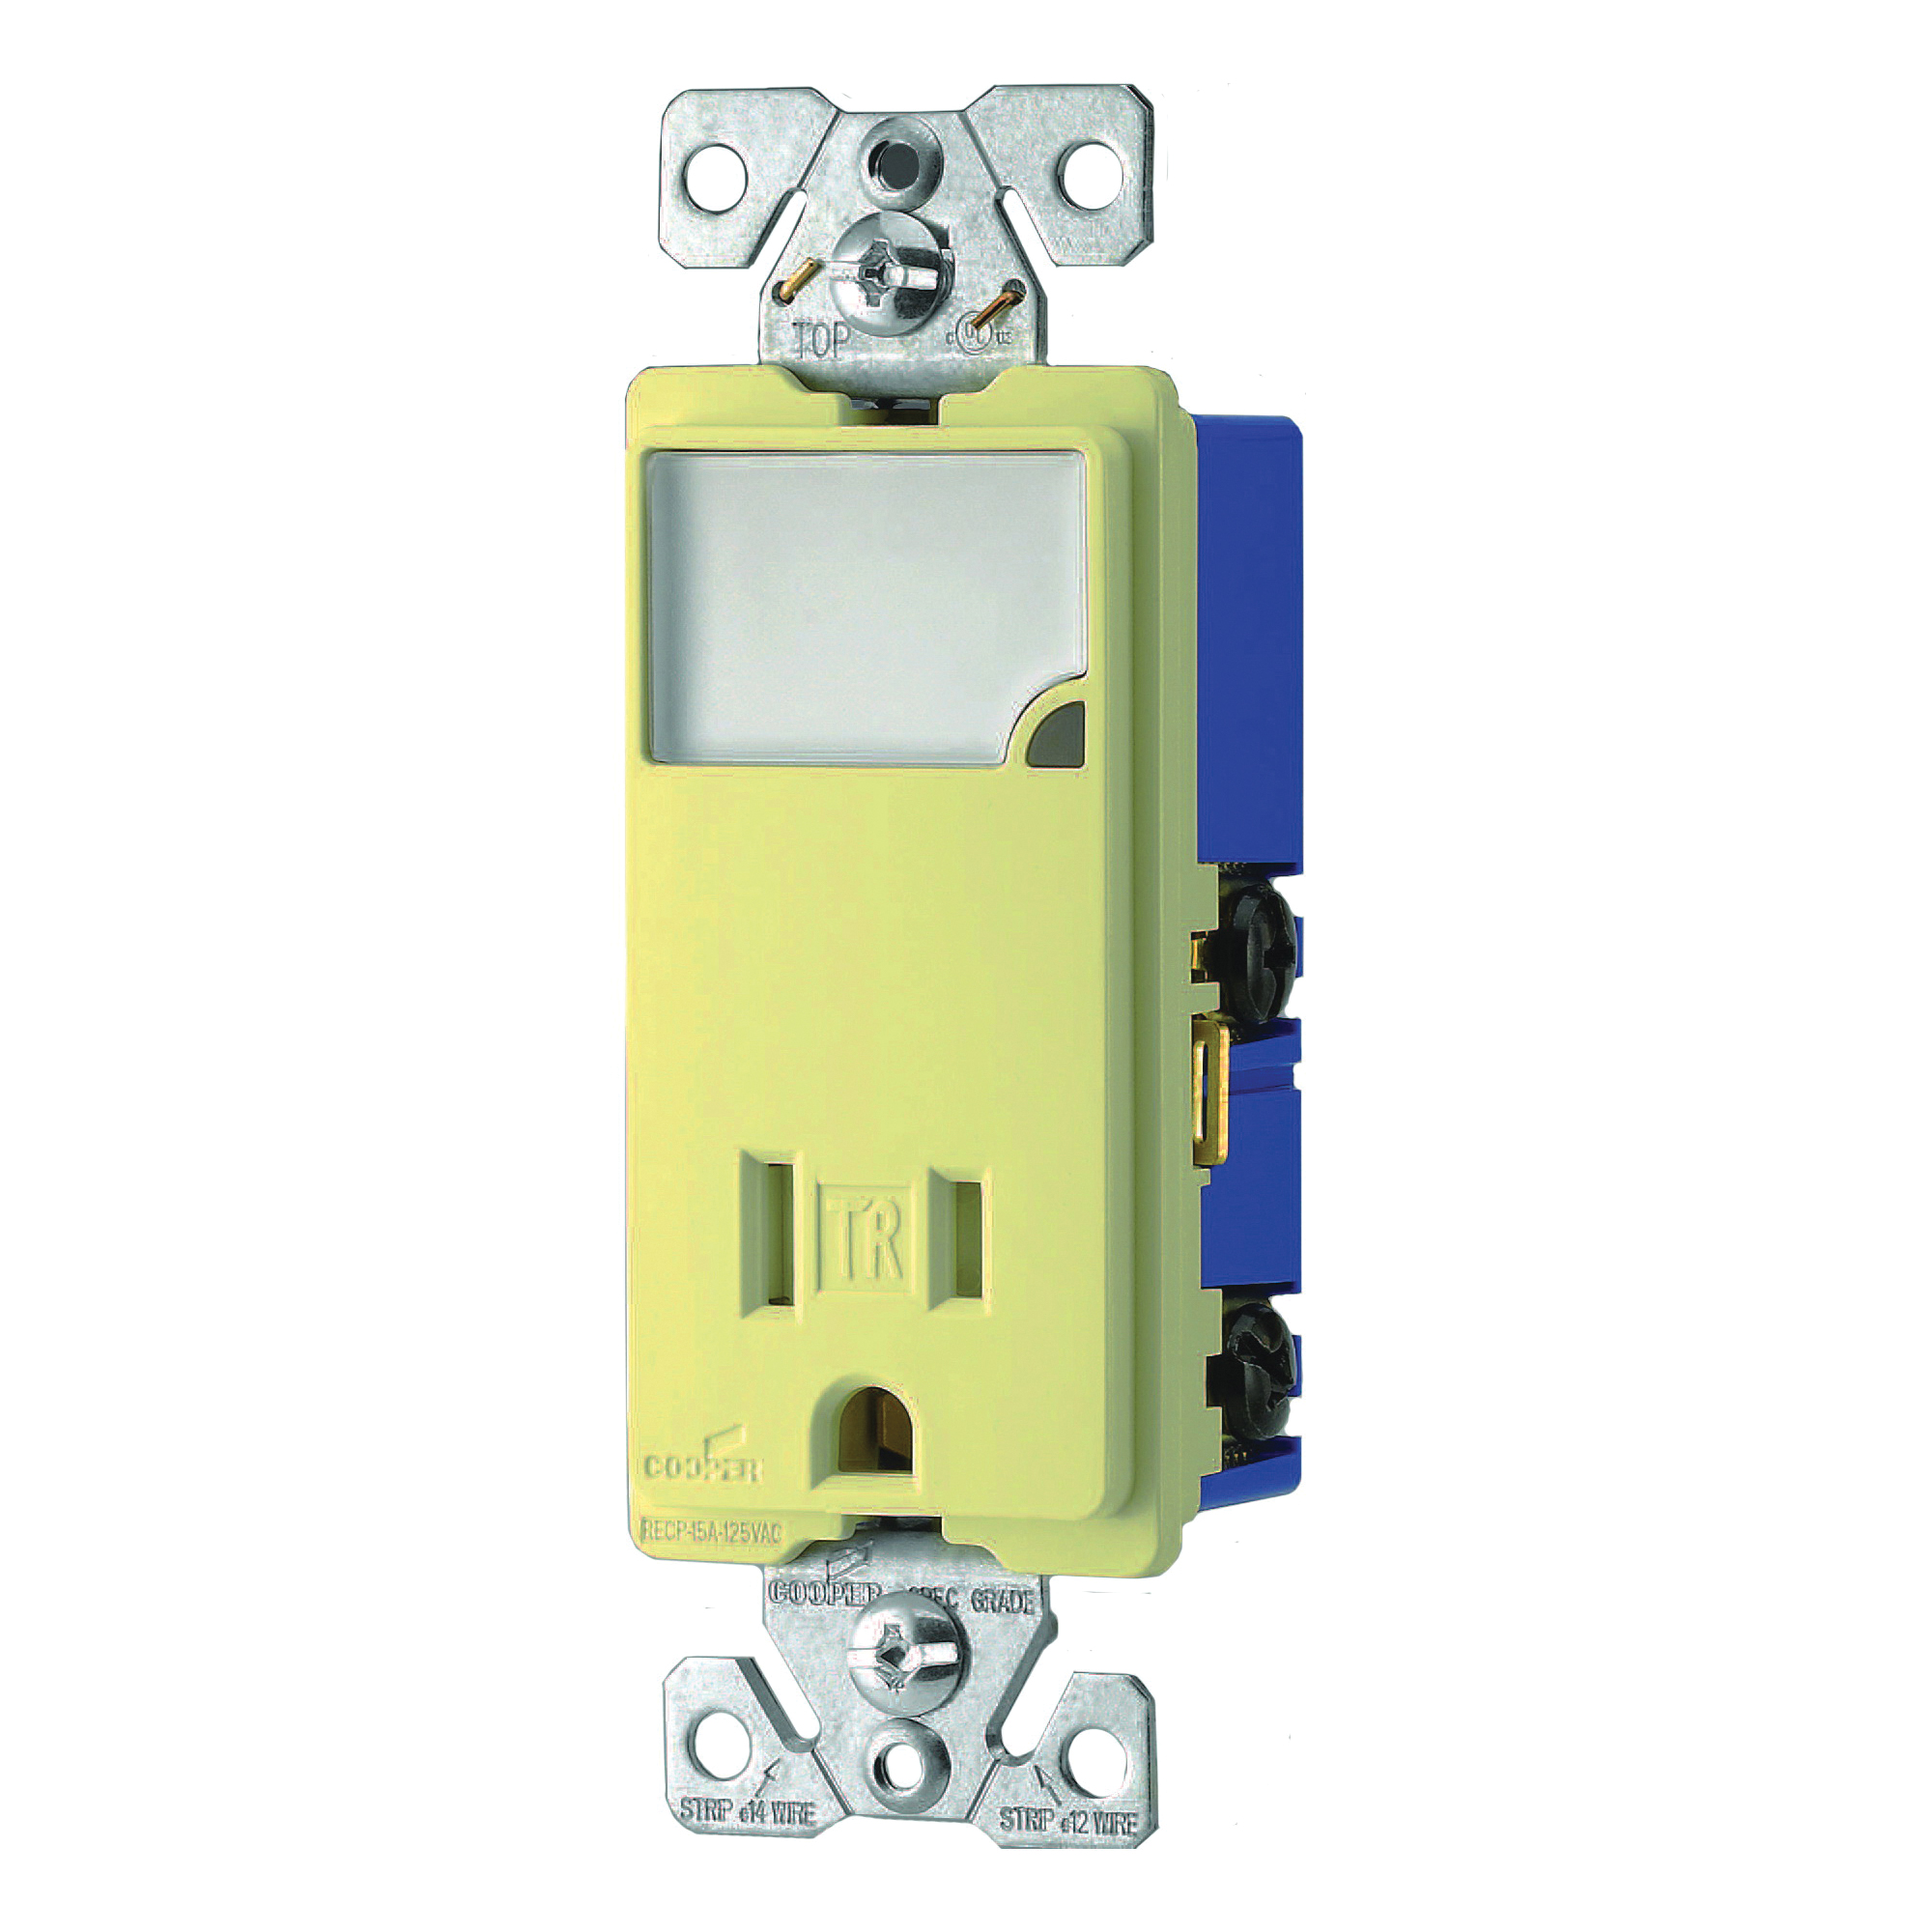 Picture of Eaton Cooper Wiring TR7735V-BOX LED Wall Box Nightlight Combination, 1-Pole, 15 A, 125 V, Ivory